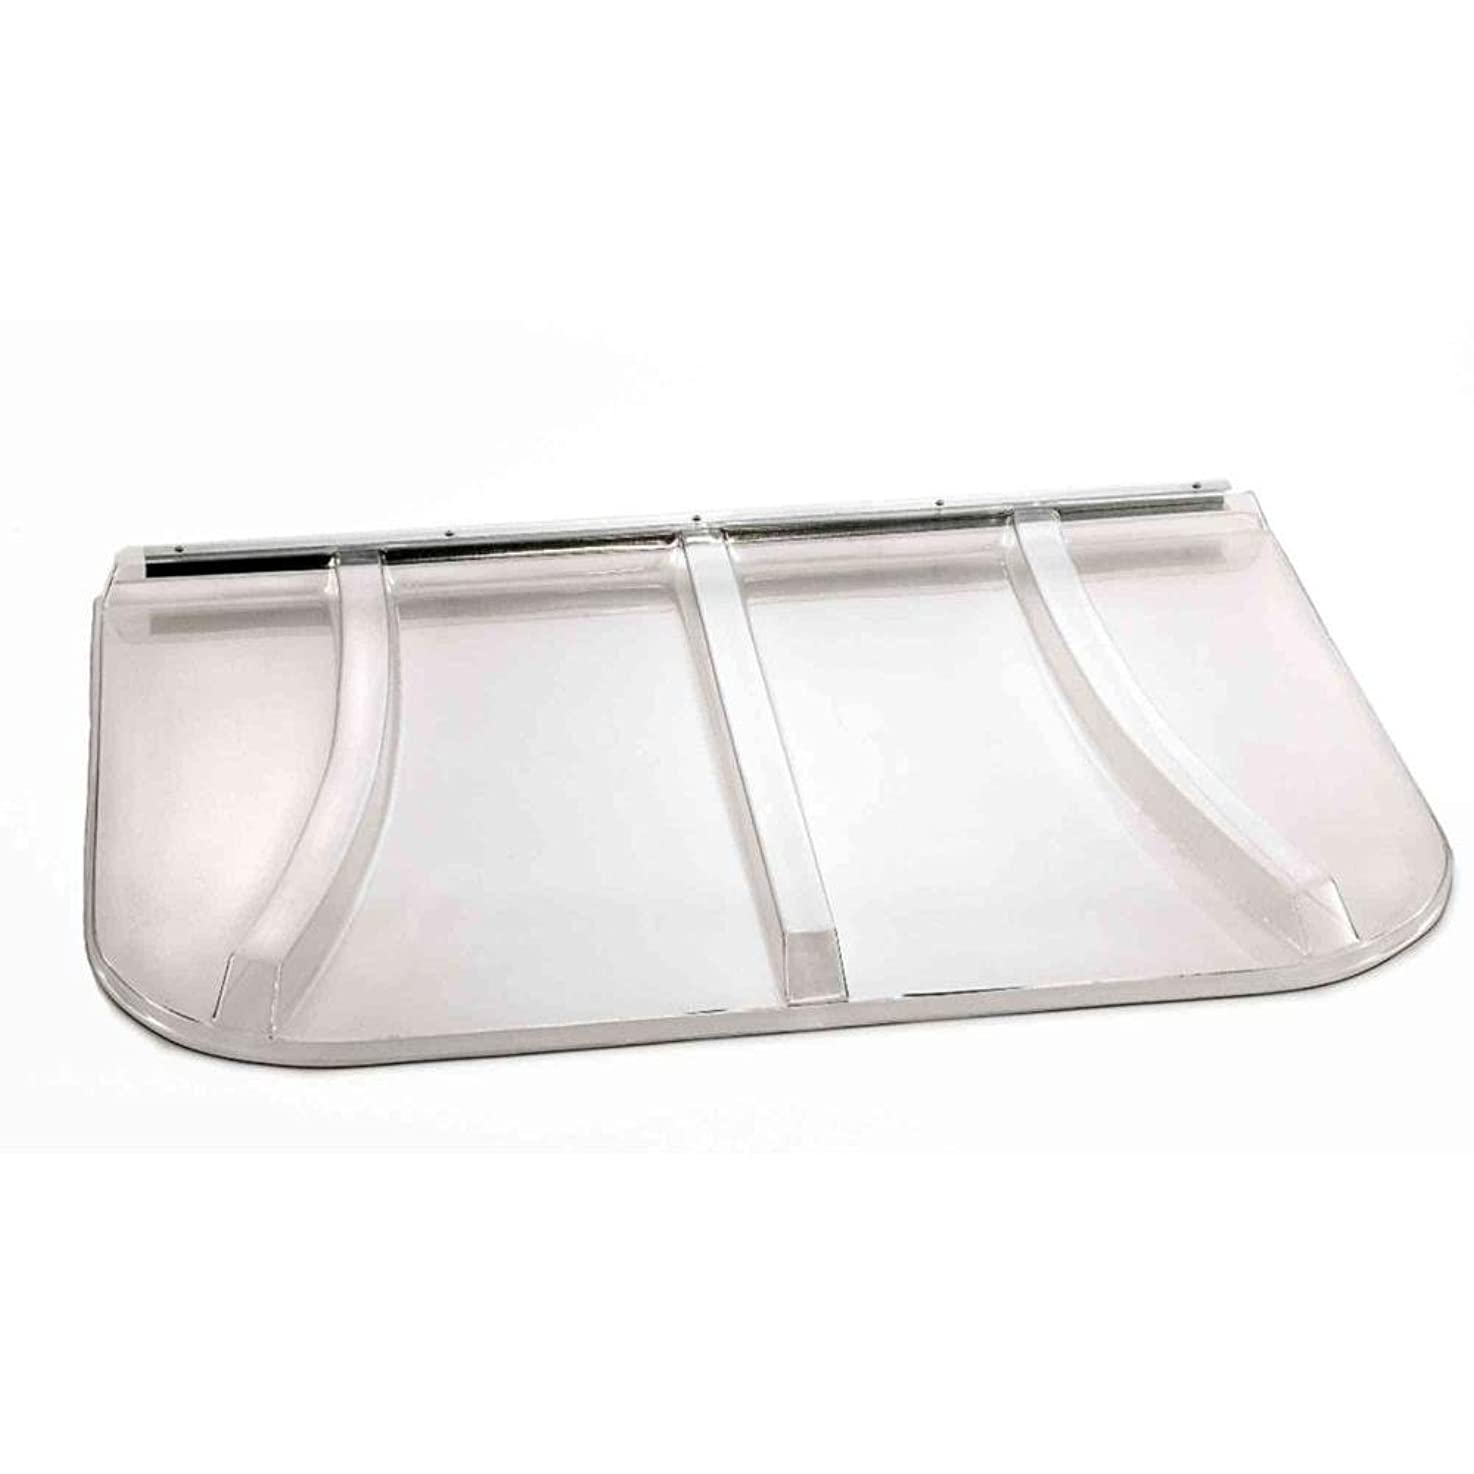 Shape Products 44 in. x 38 in. Universal Fit Polycarbonate Window Well Cover